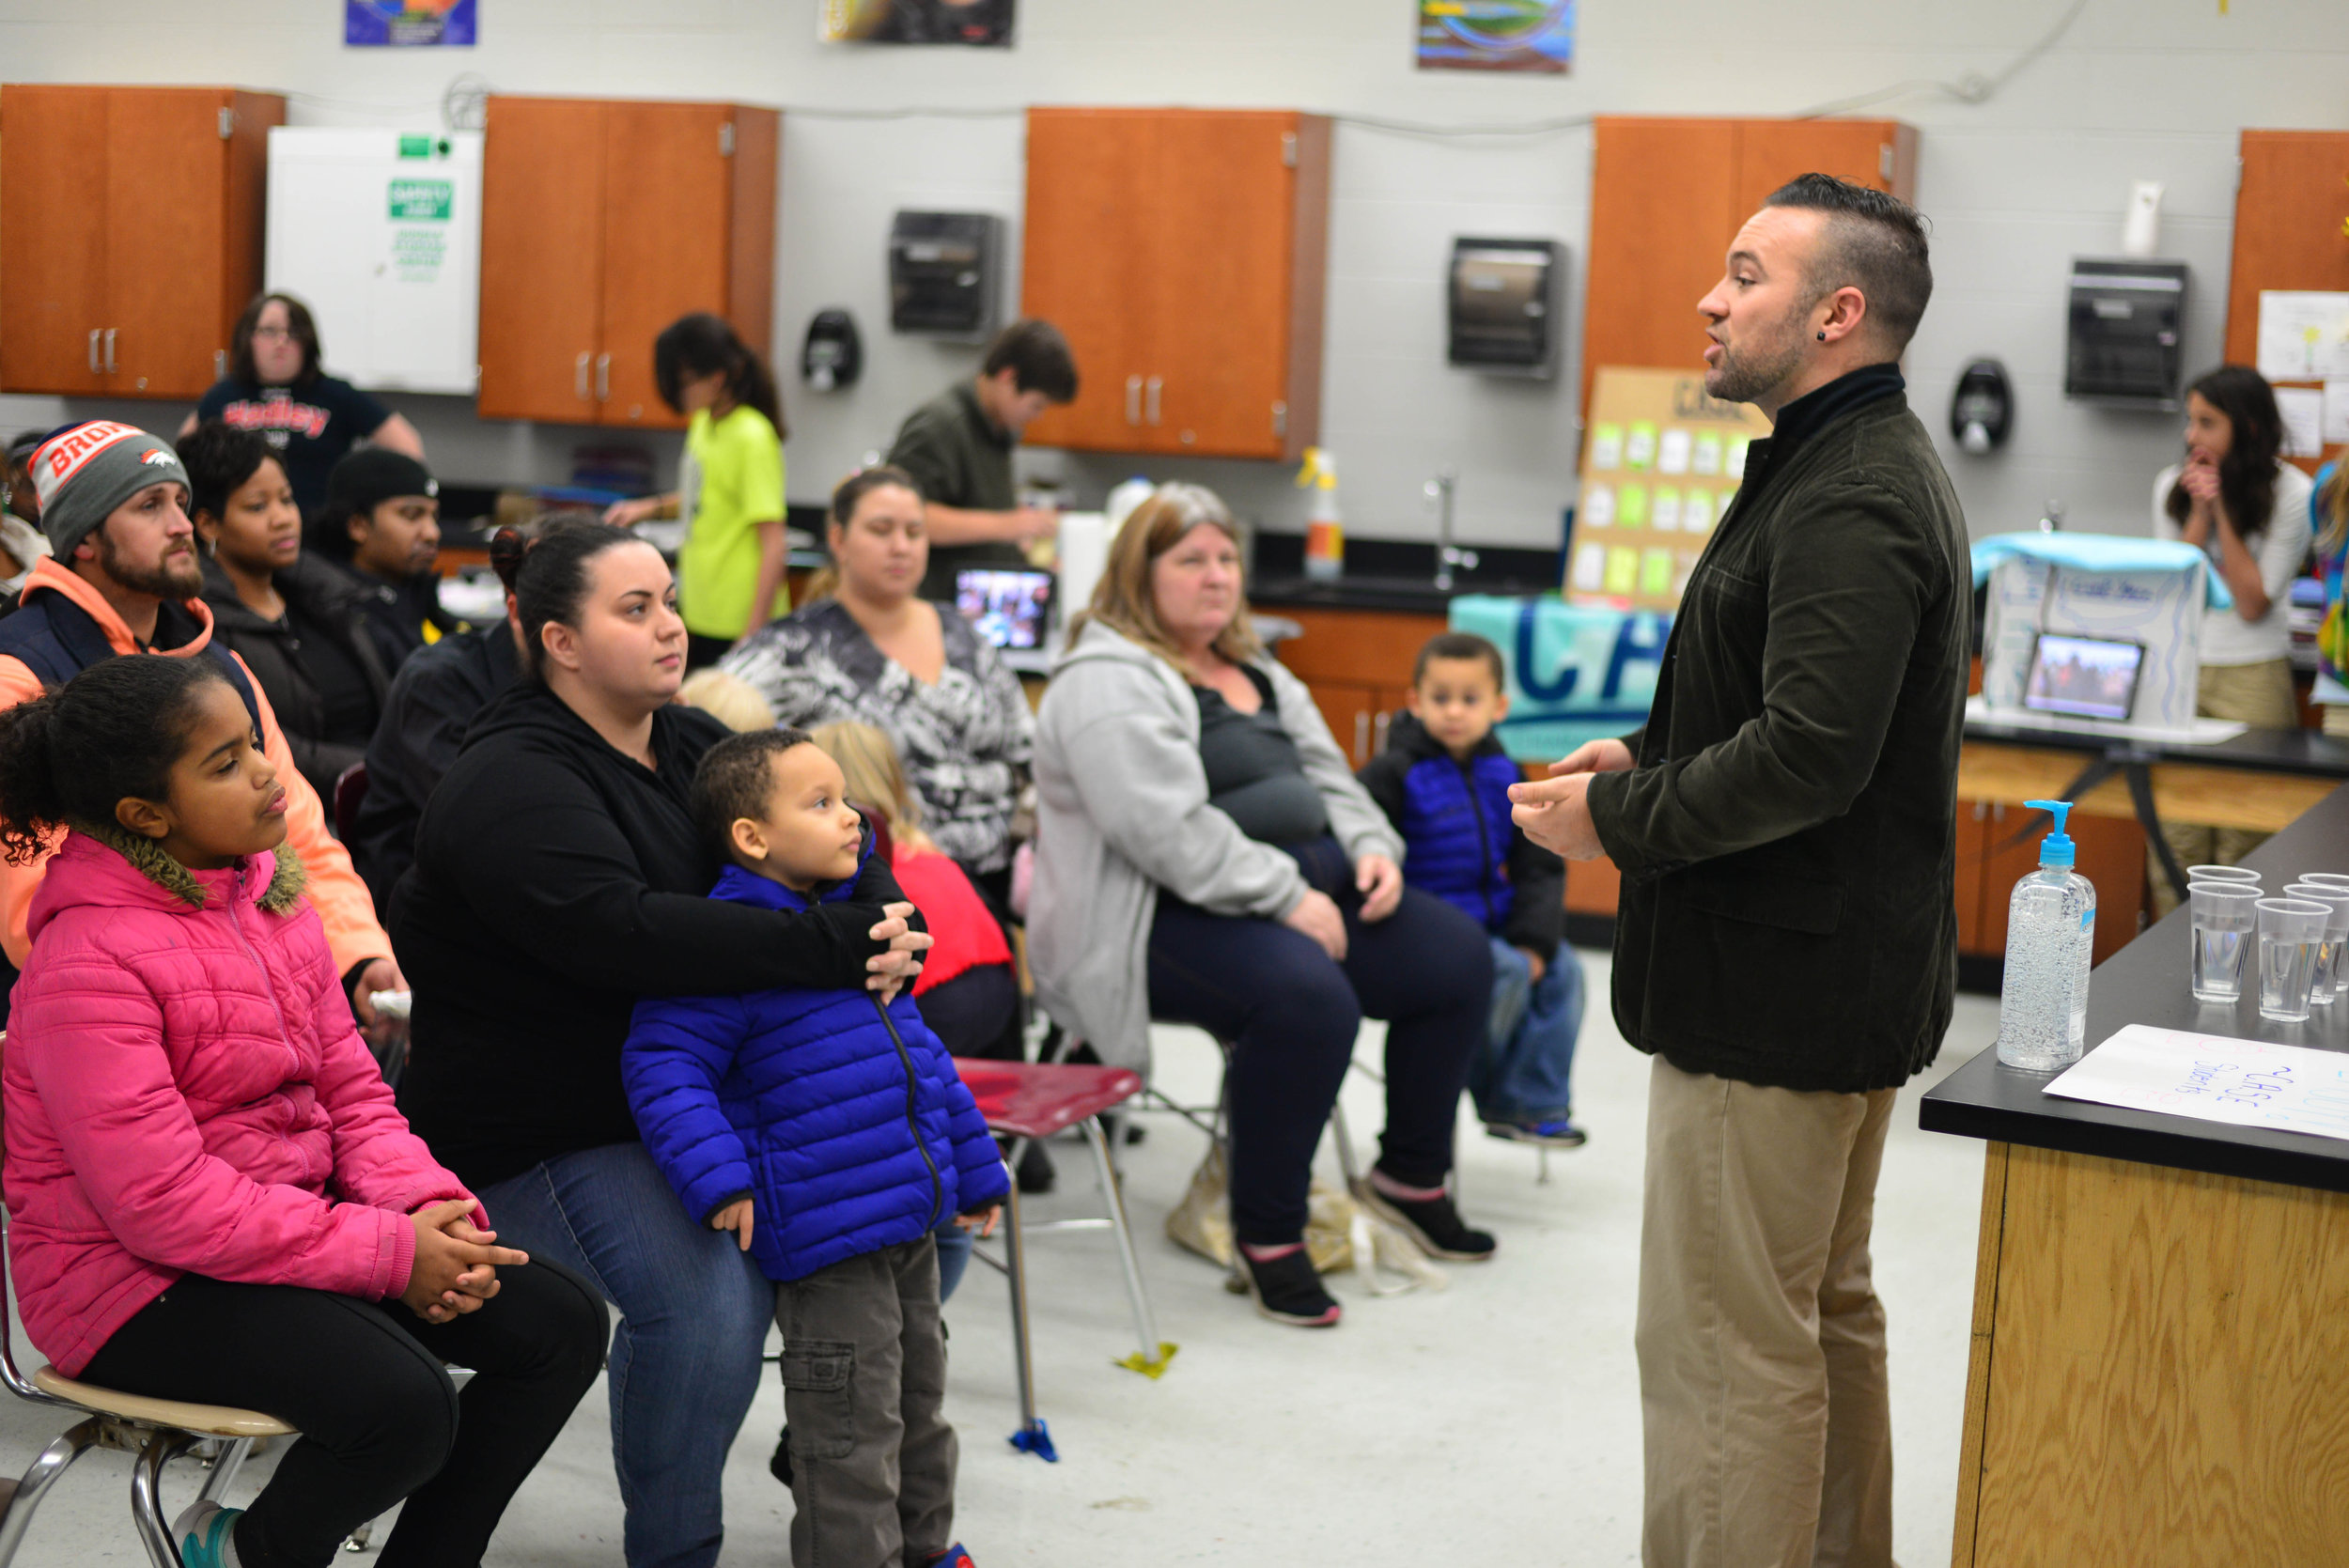 Dupont Hadley Site Coordinator Craig Duffy speaks with parents of C.A.S.E. students at the ShowCASE, where students are able to put on display the skills they have learned over the course of the semester.